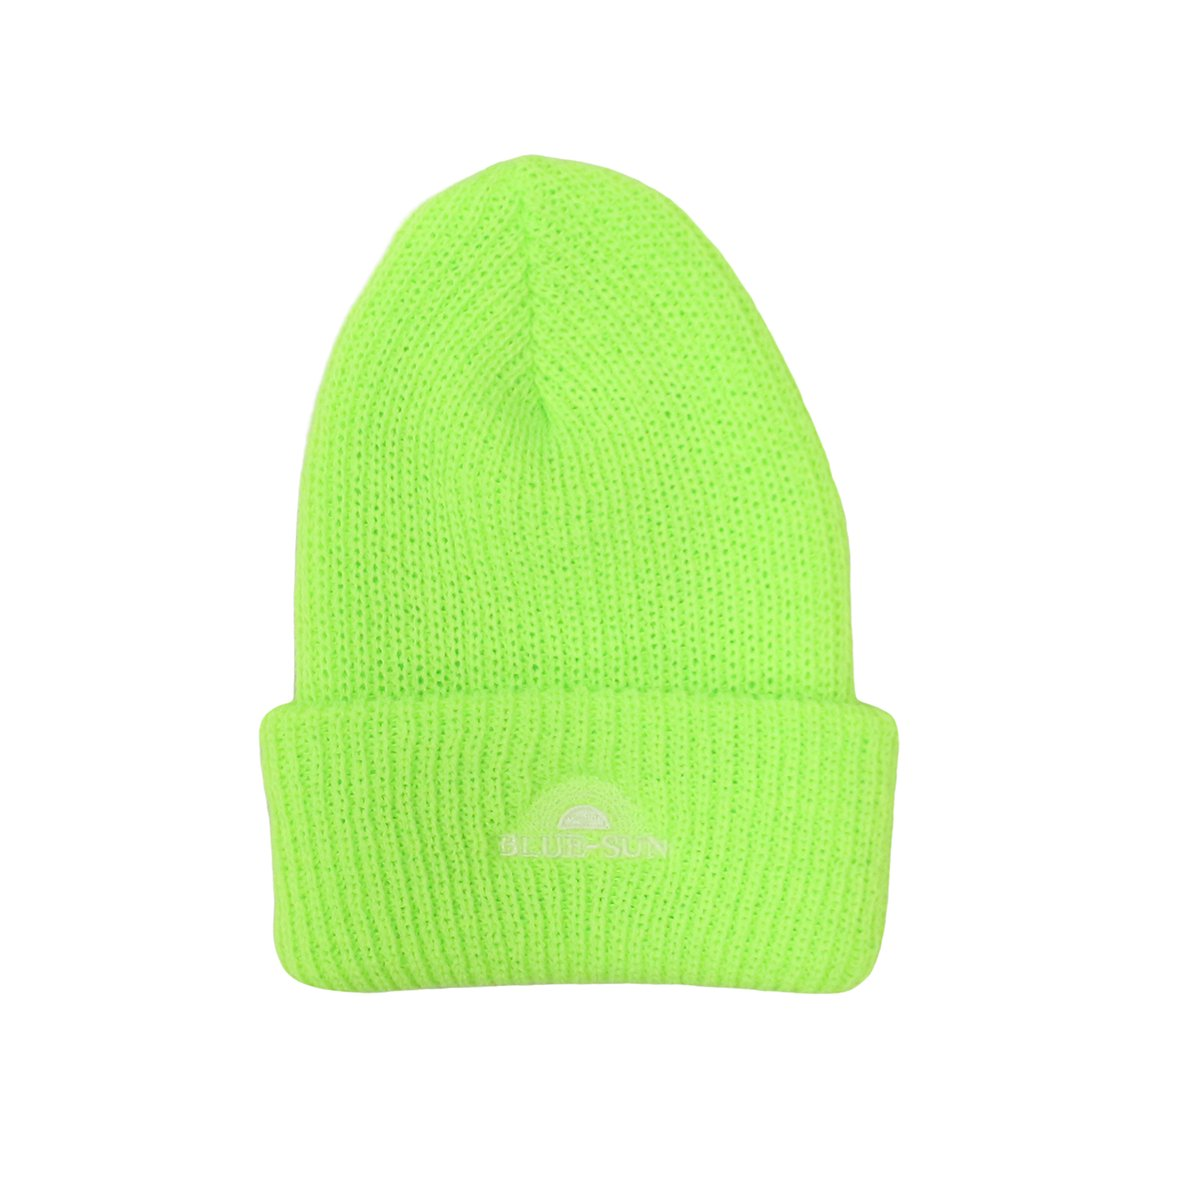 LOOSE GUAGE BEANIE 【BRIGHT LIME】